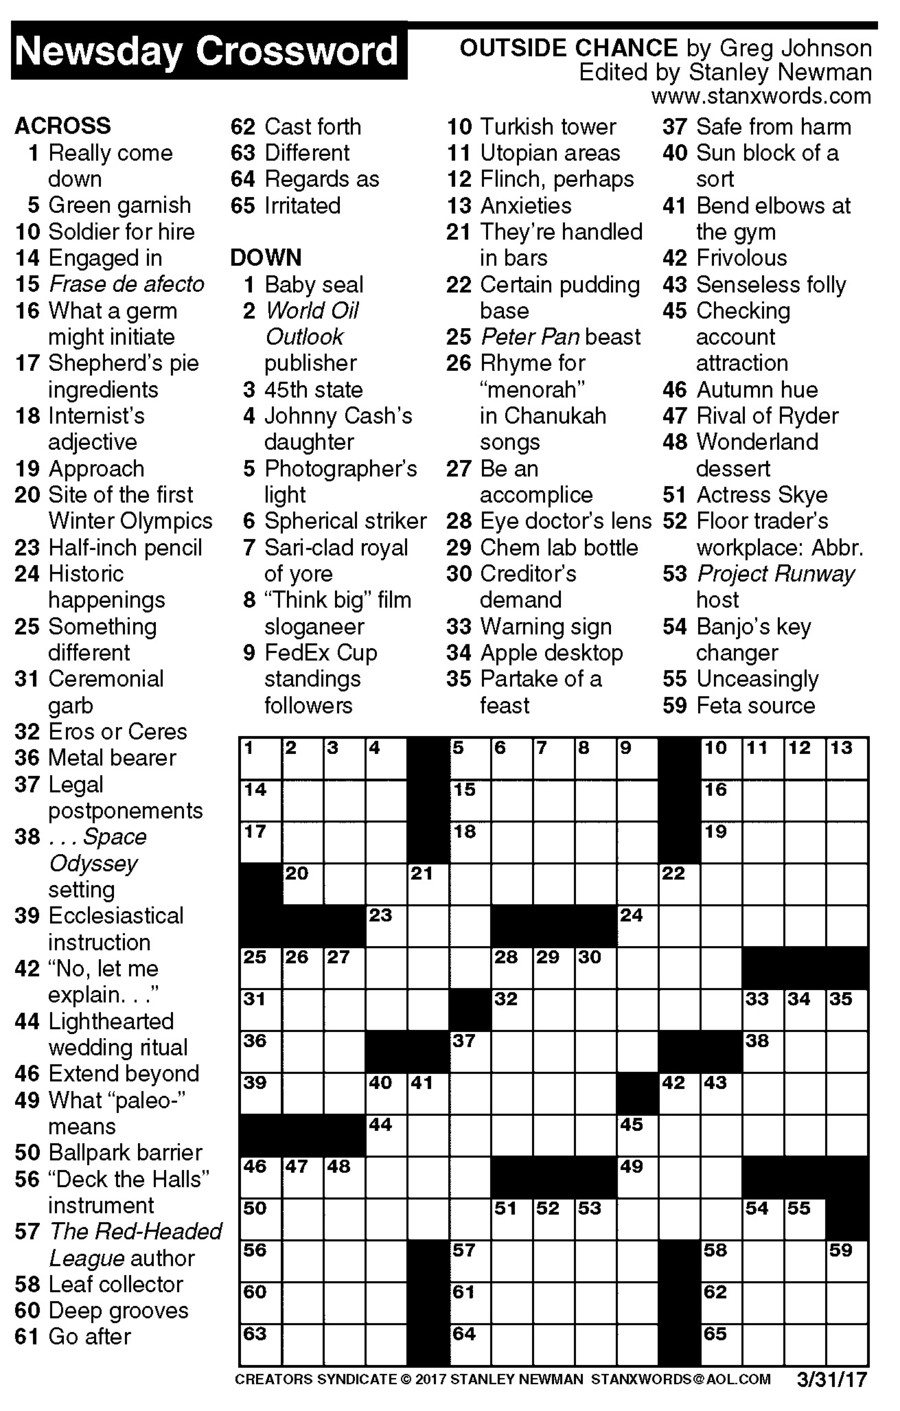 Newsday Crossword Puzzle For Mar 31, 2017,stanley Newman - Printable Crossword Newsday